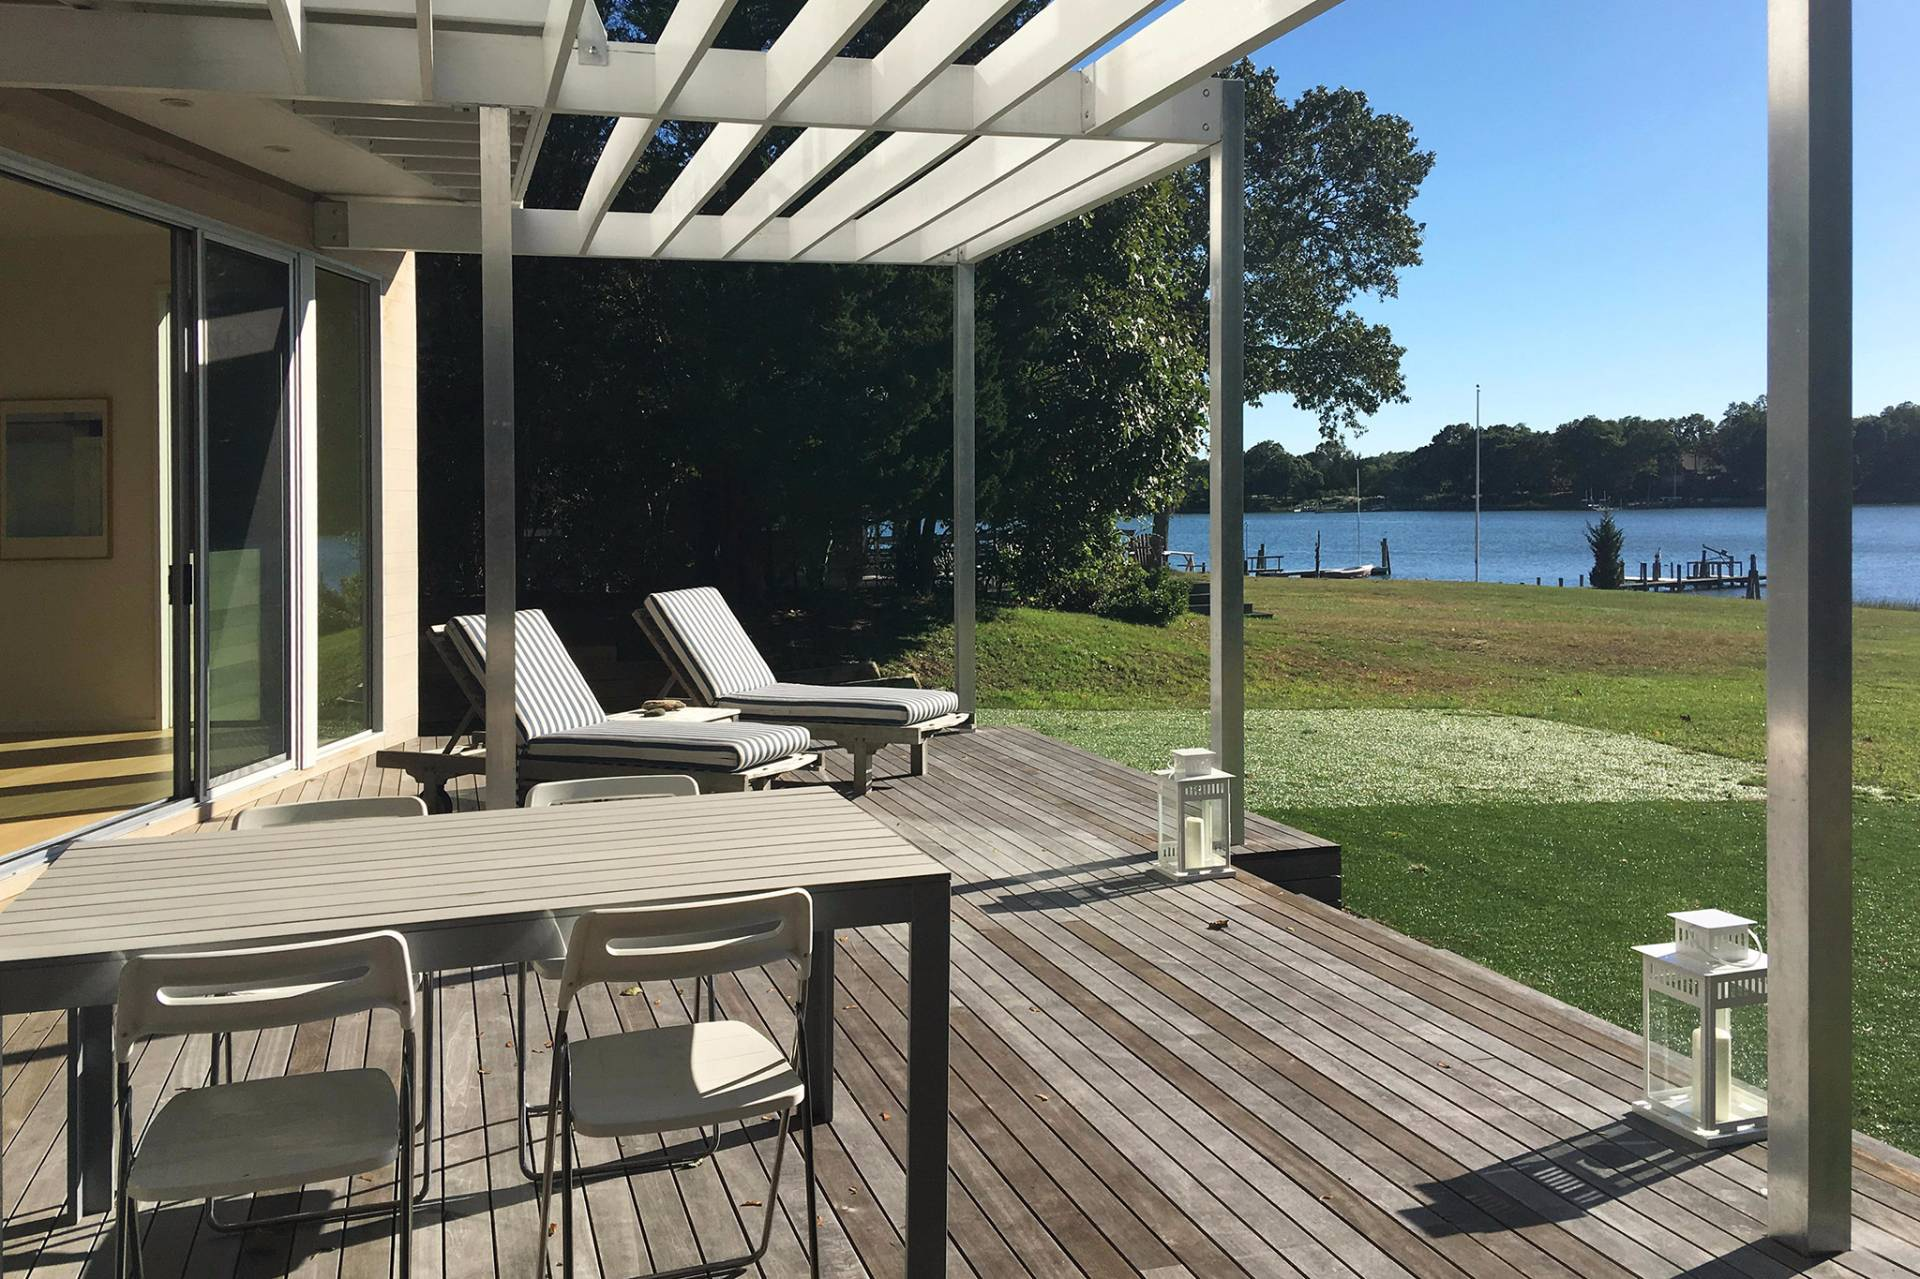 Additional photo for property listing at Sleek Shelter Island Waterfront With Dock  Shelter Island, New York